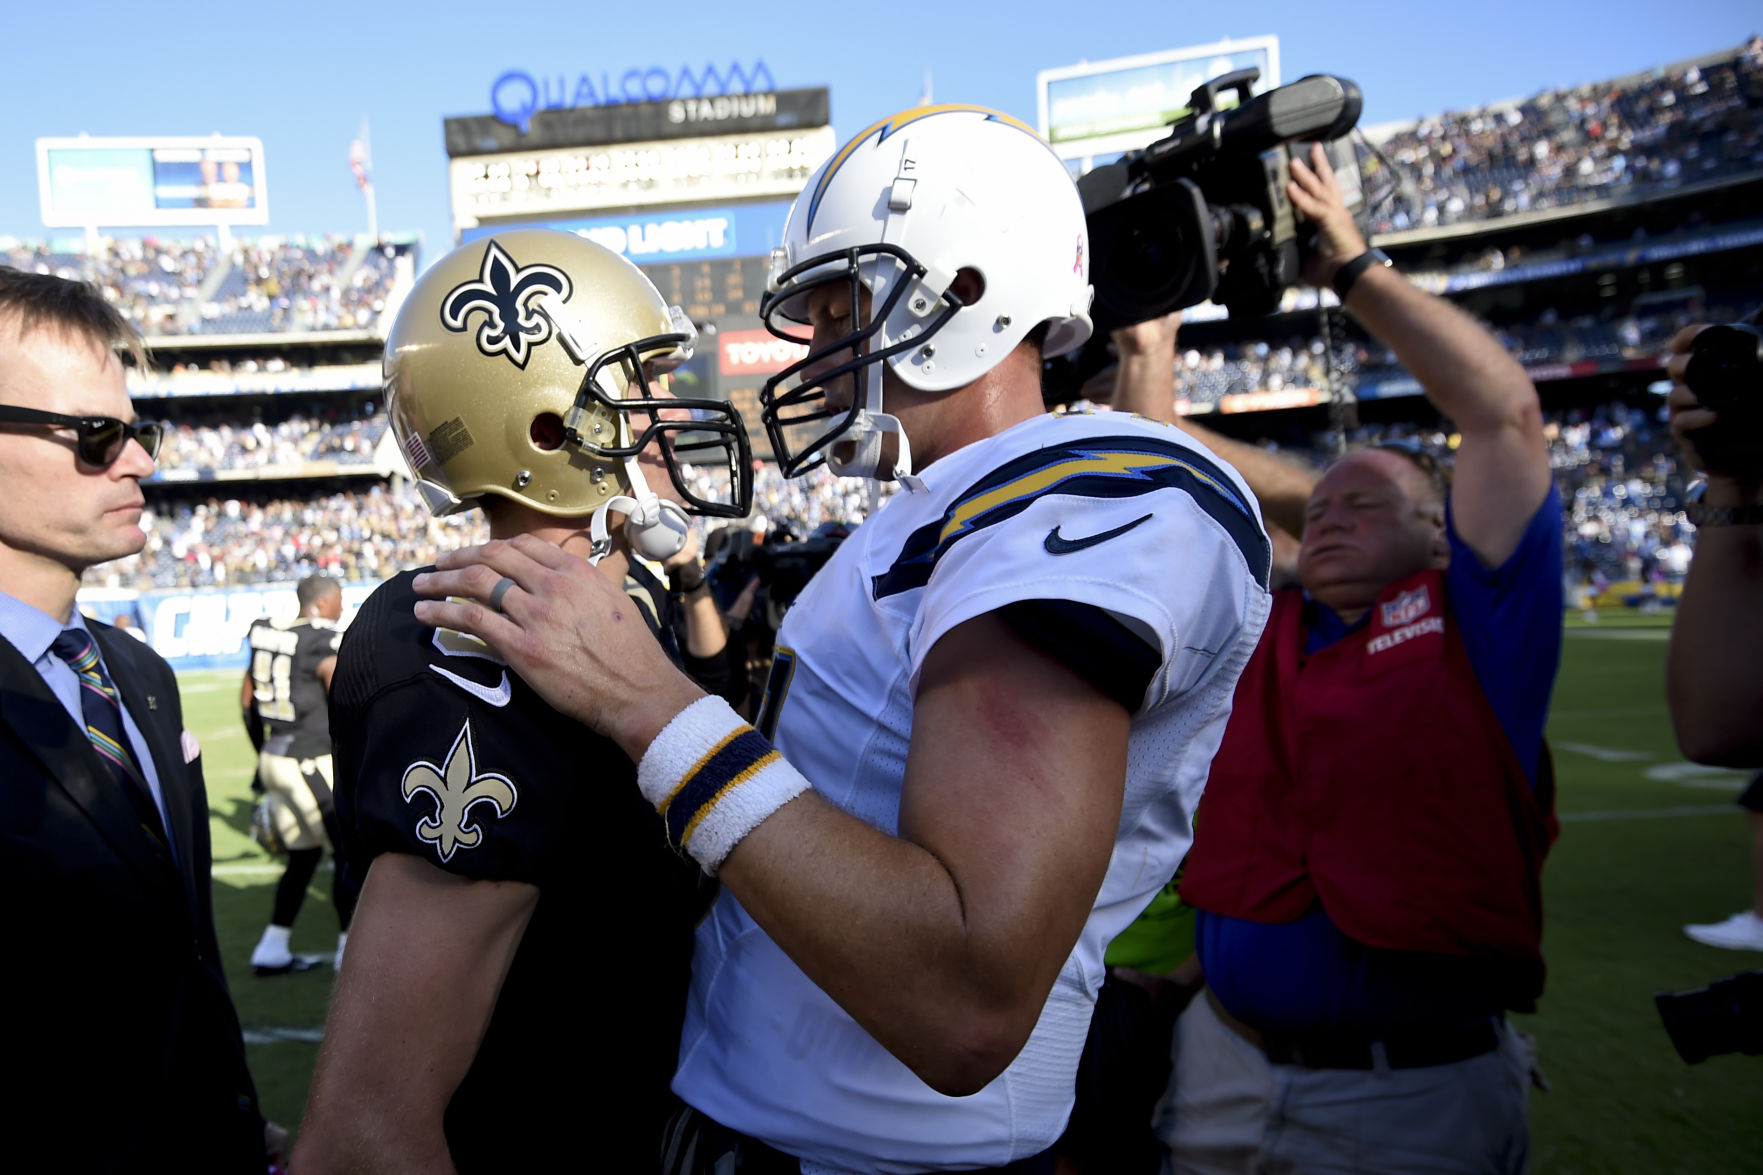 Game recap: New Orleans Saints 13, Los Angeles Chargers 7